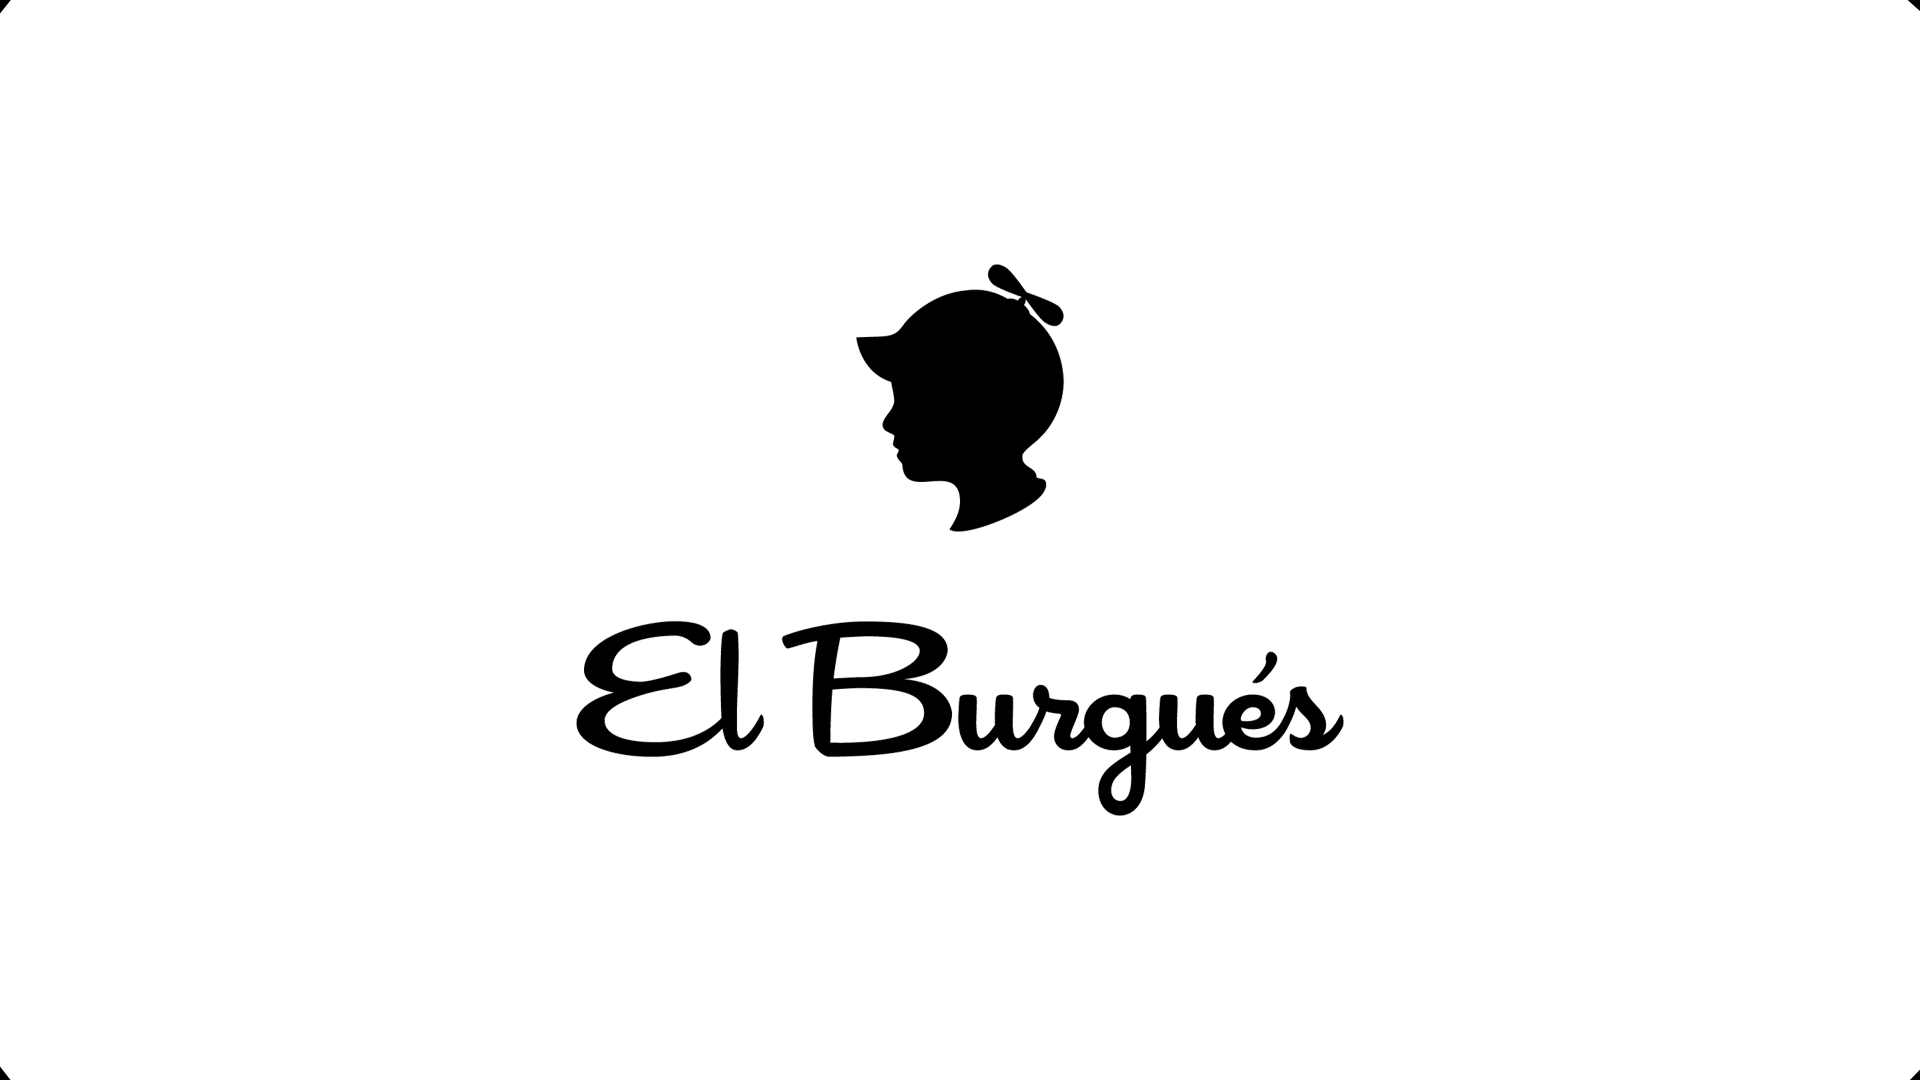 LIVE MULTIMARCA - El-Burgues